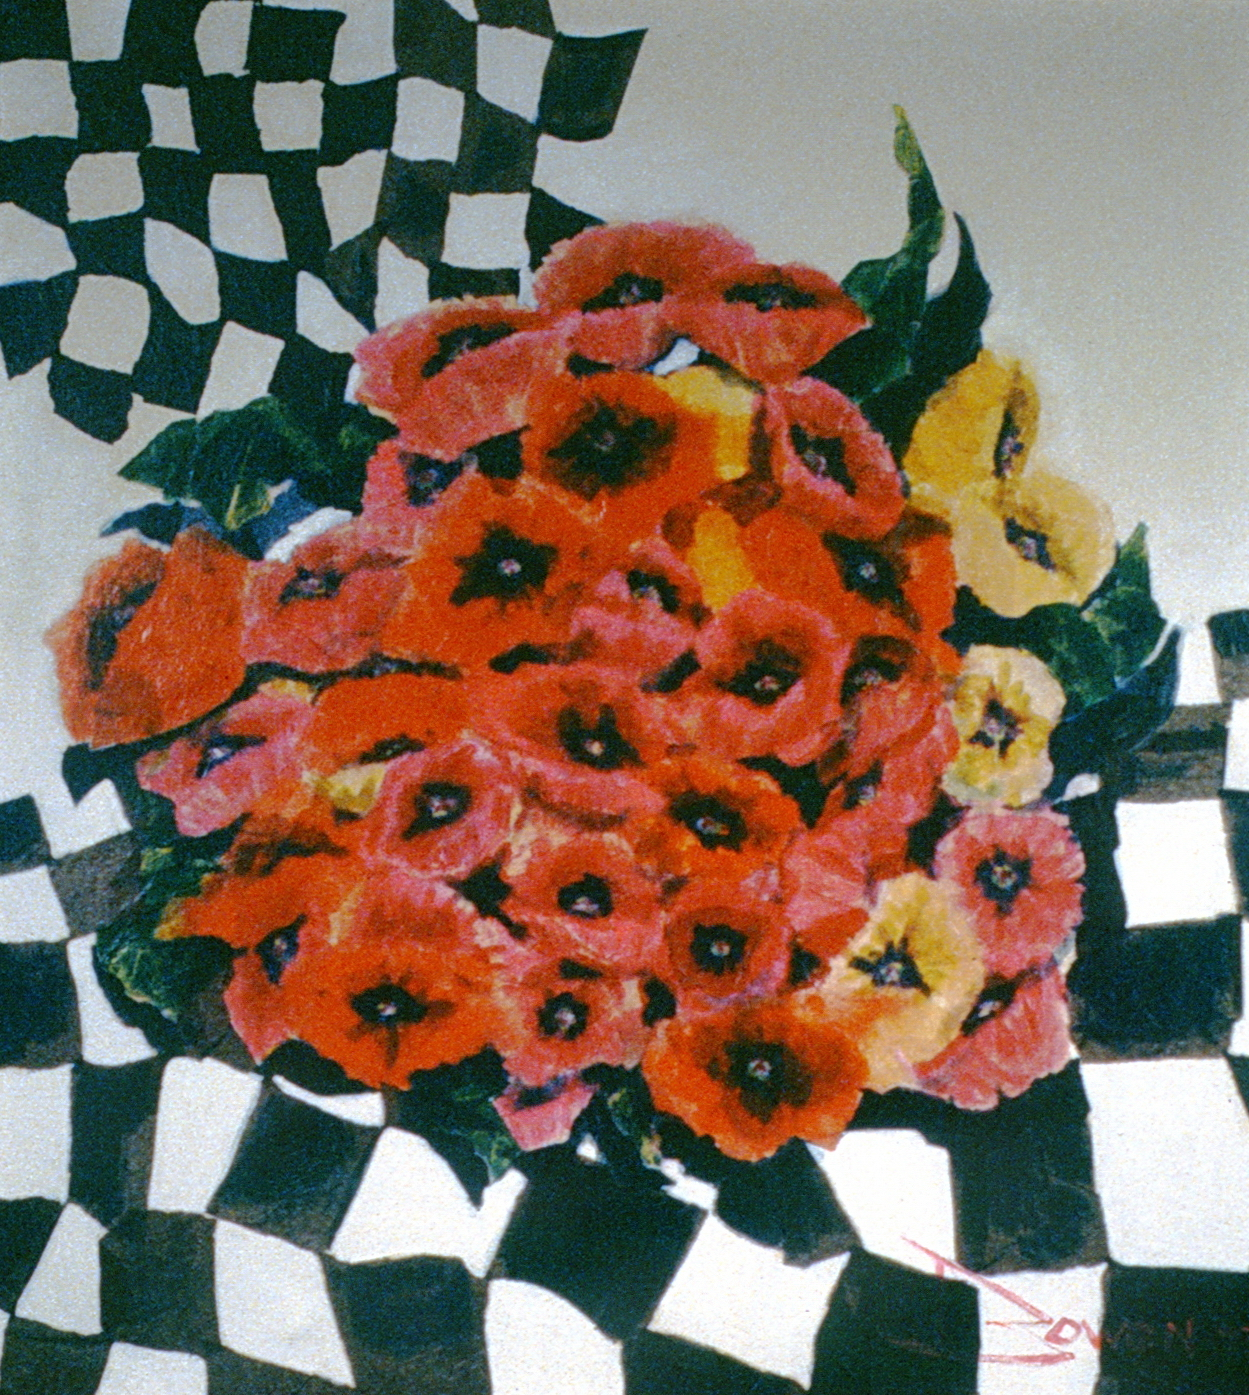 Poppies and Checks , 1973, Audrey Owen, acrylic collage, 86.5 cm x 96 cm, 1973.01.01, gift of an anonymous Art Club member